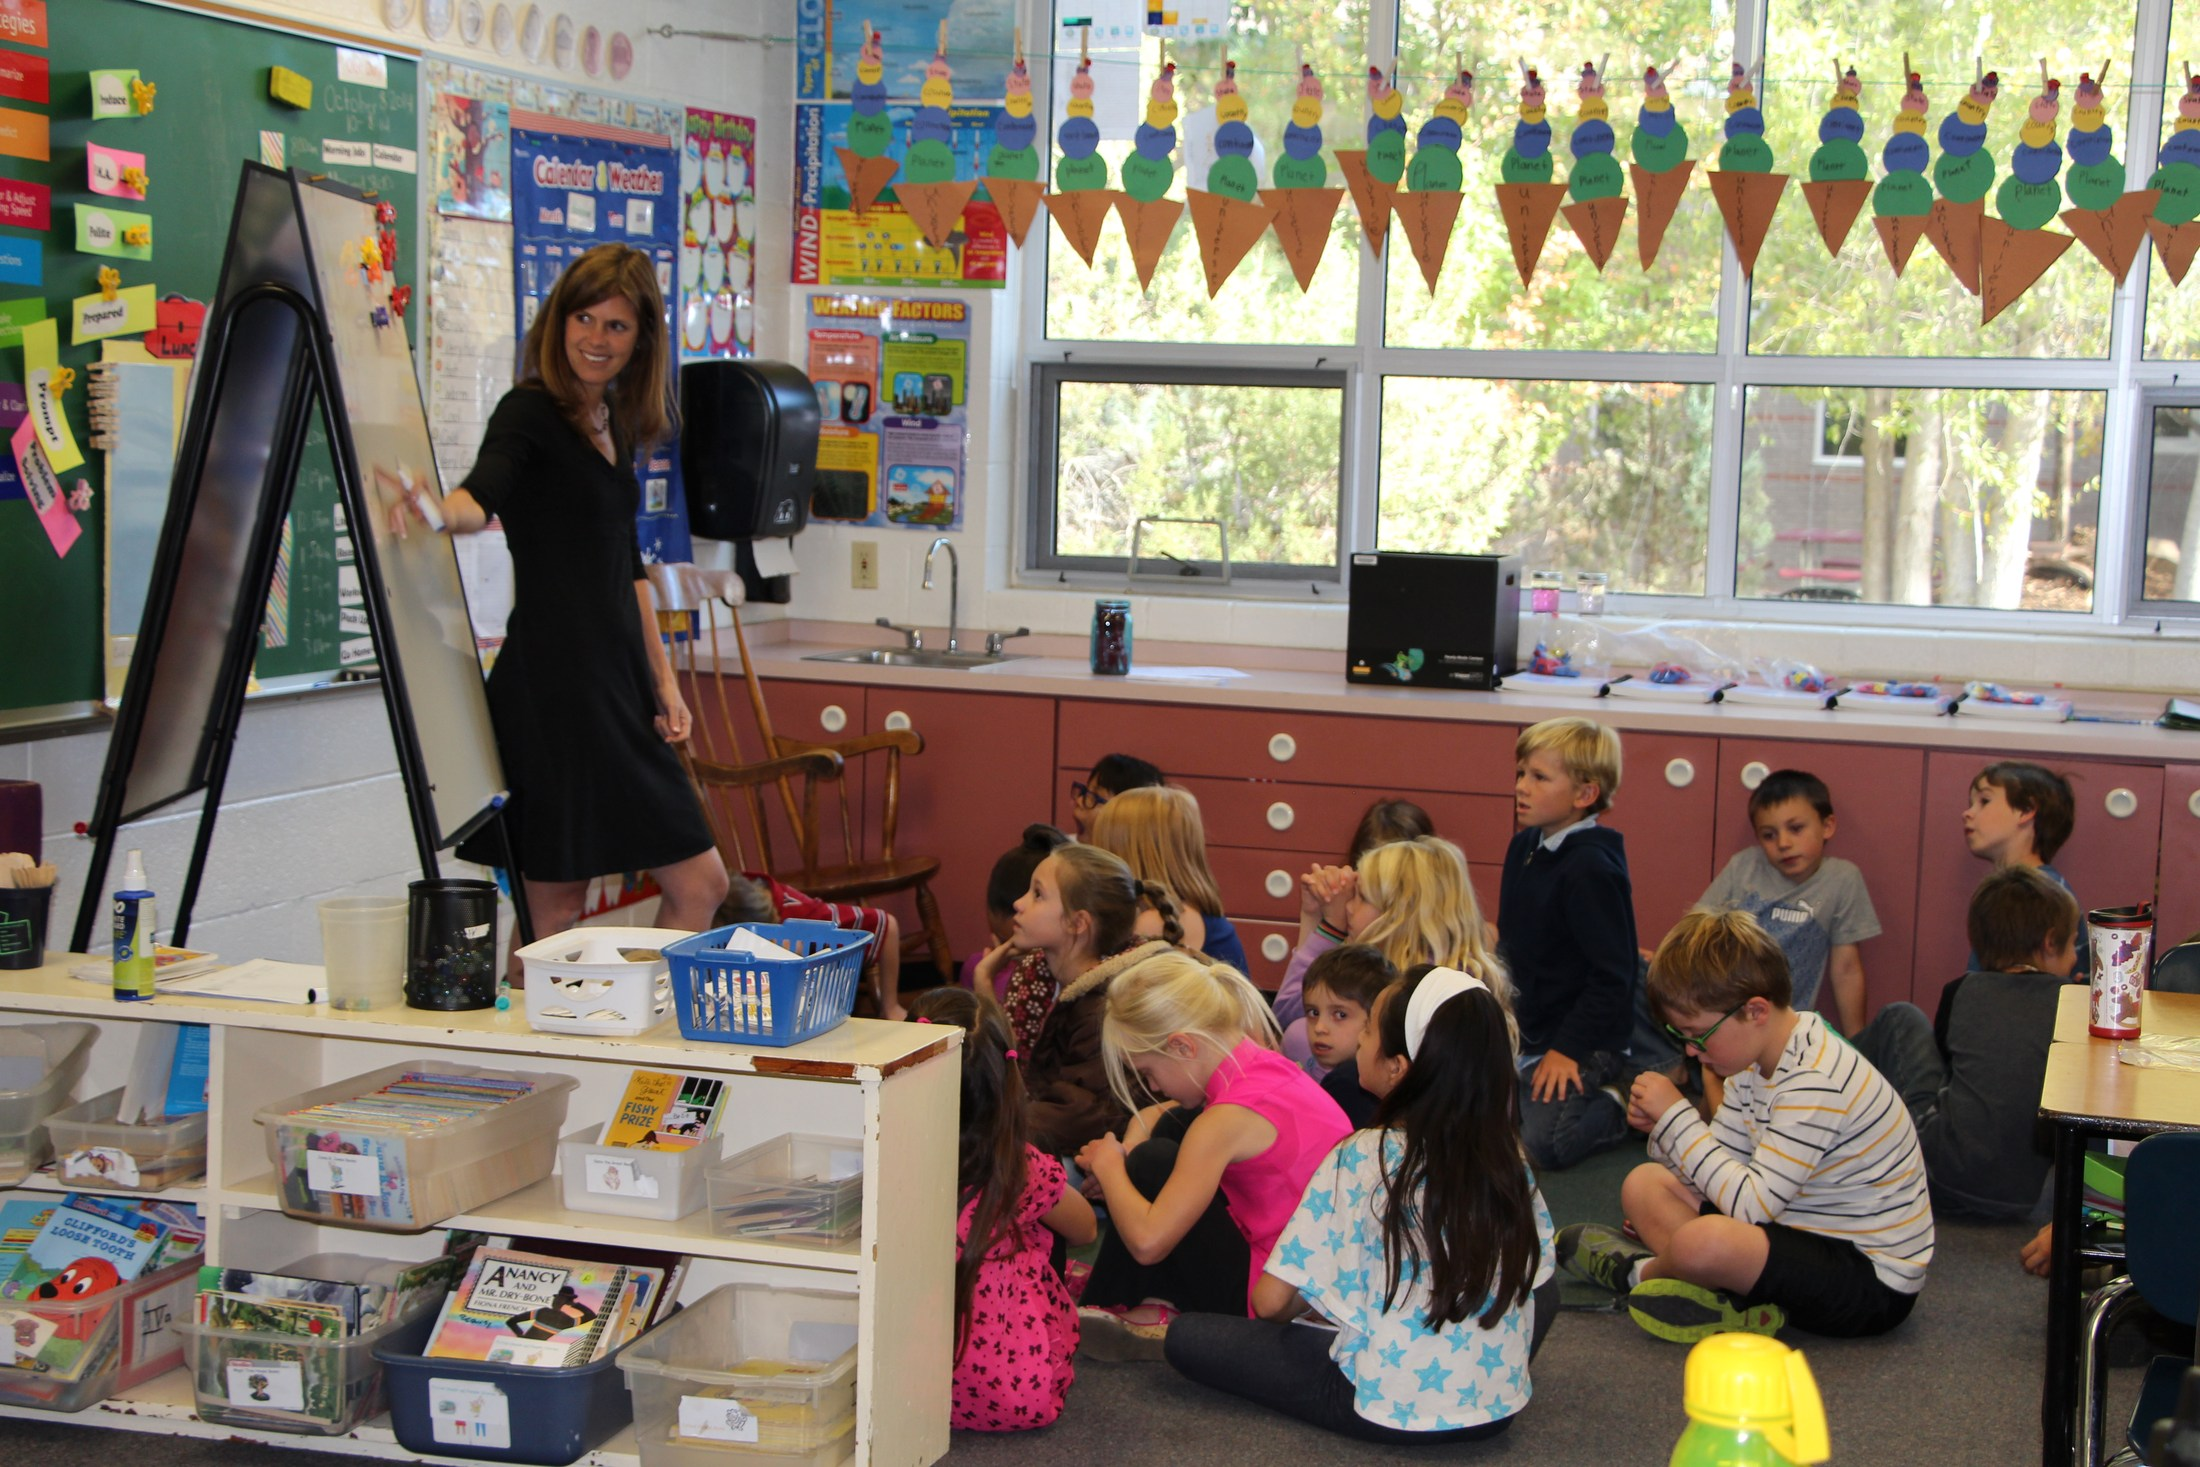 Teacher and students in first grade classroom.